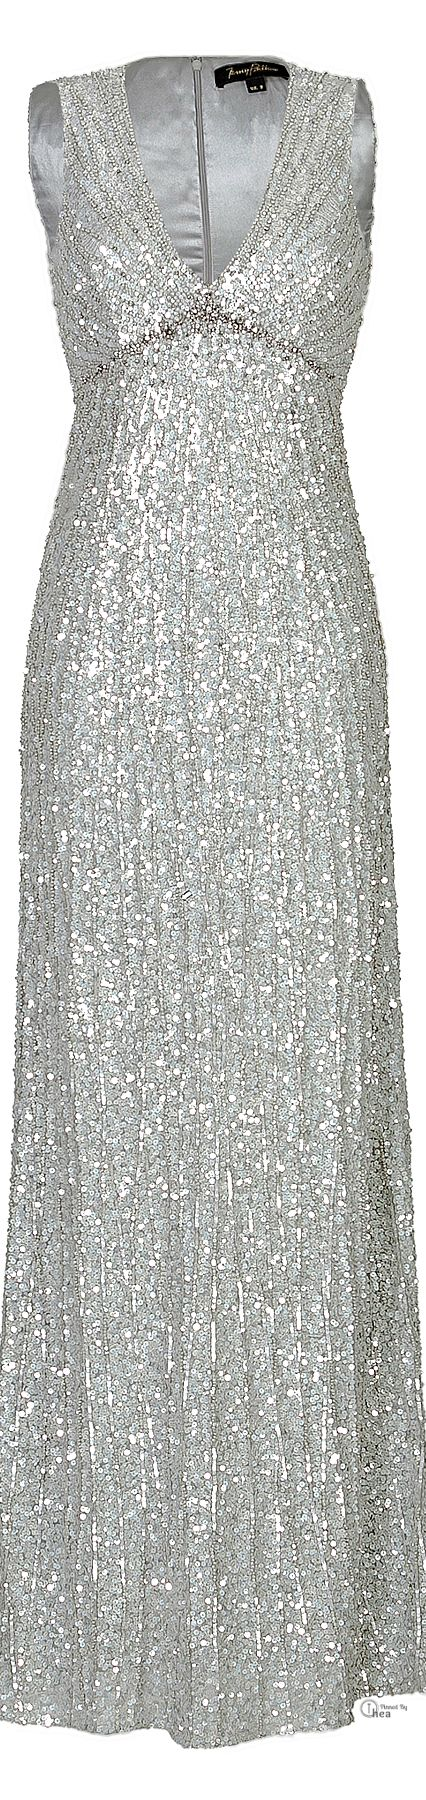 Jenny Packham ● Silver Sequin Gown